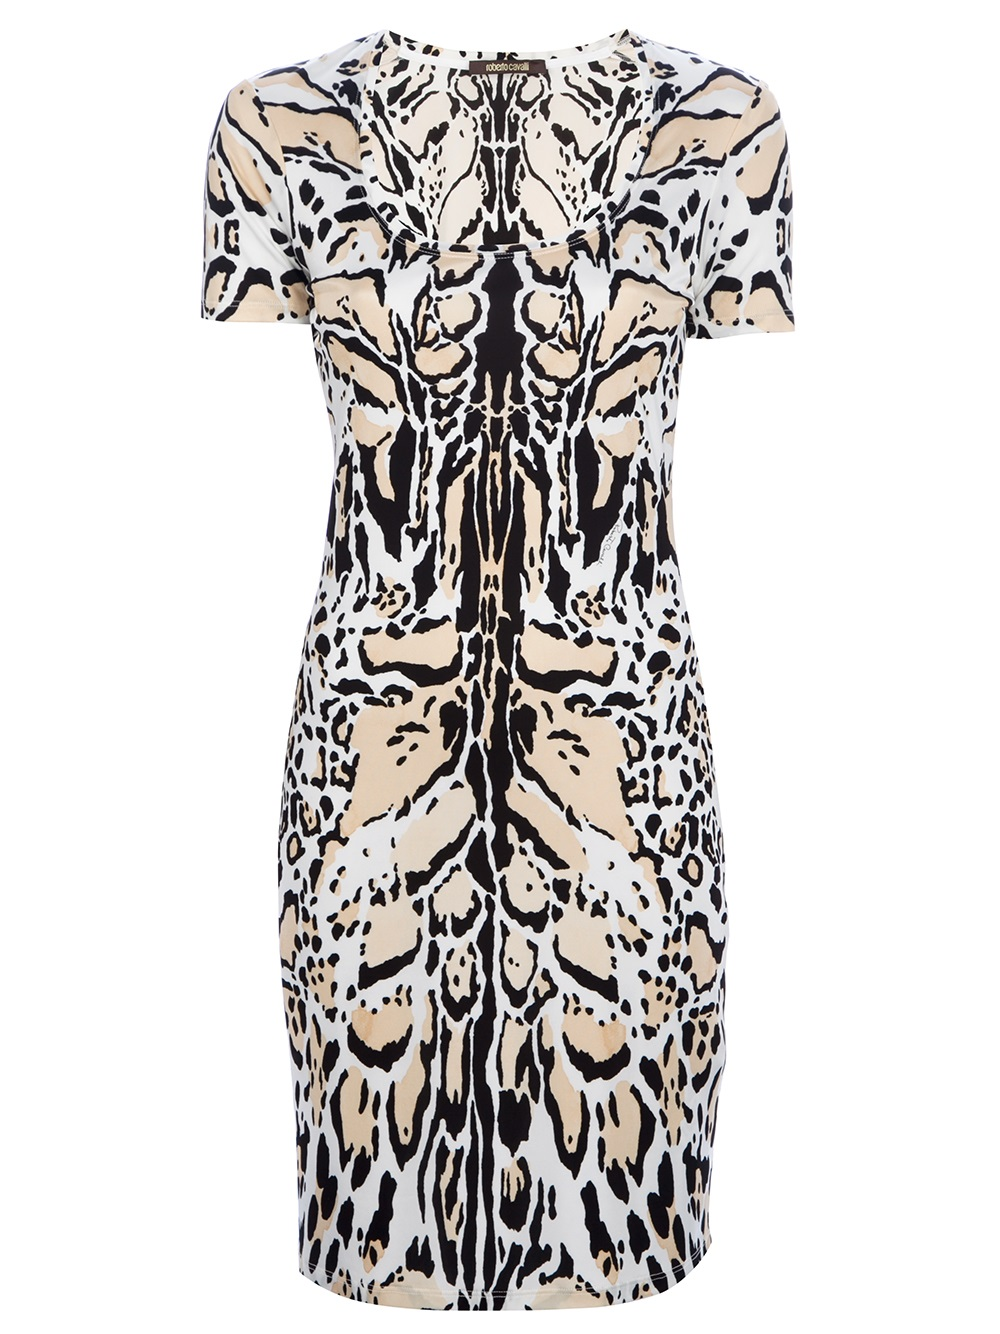 486f7b5352 Lyst - Roberto Cavalli Animal Print Dress